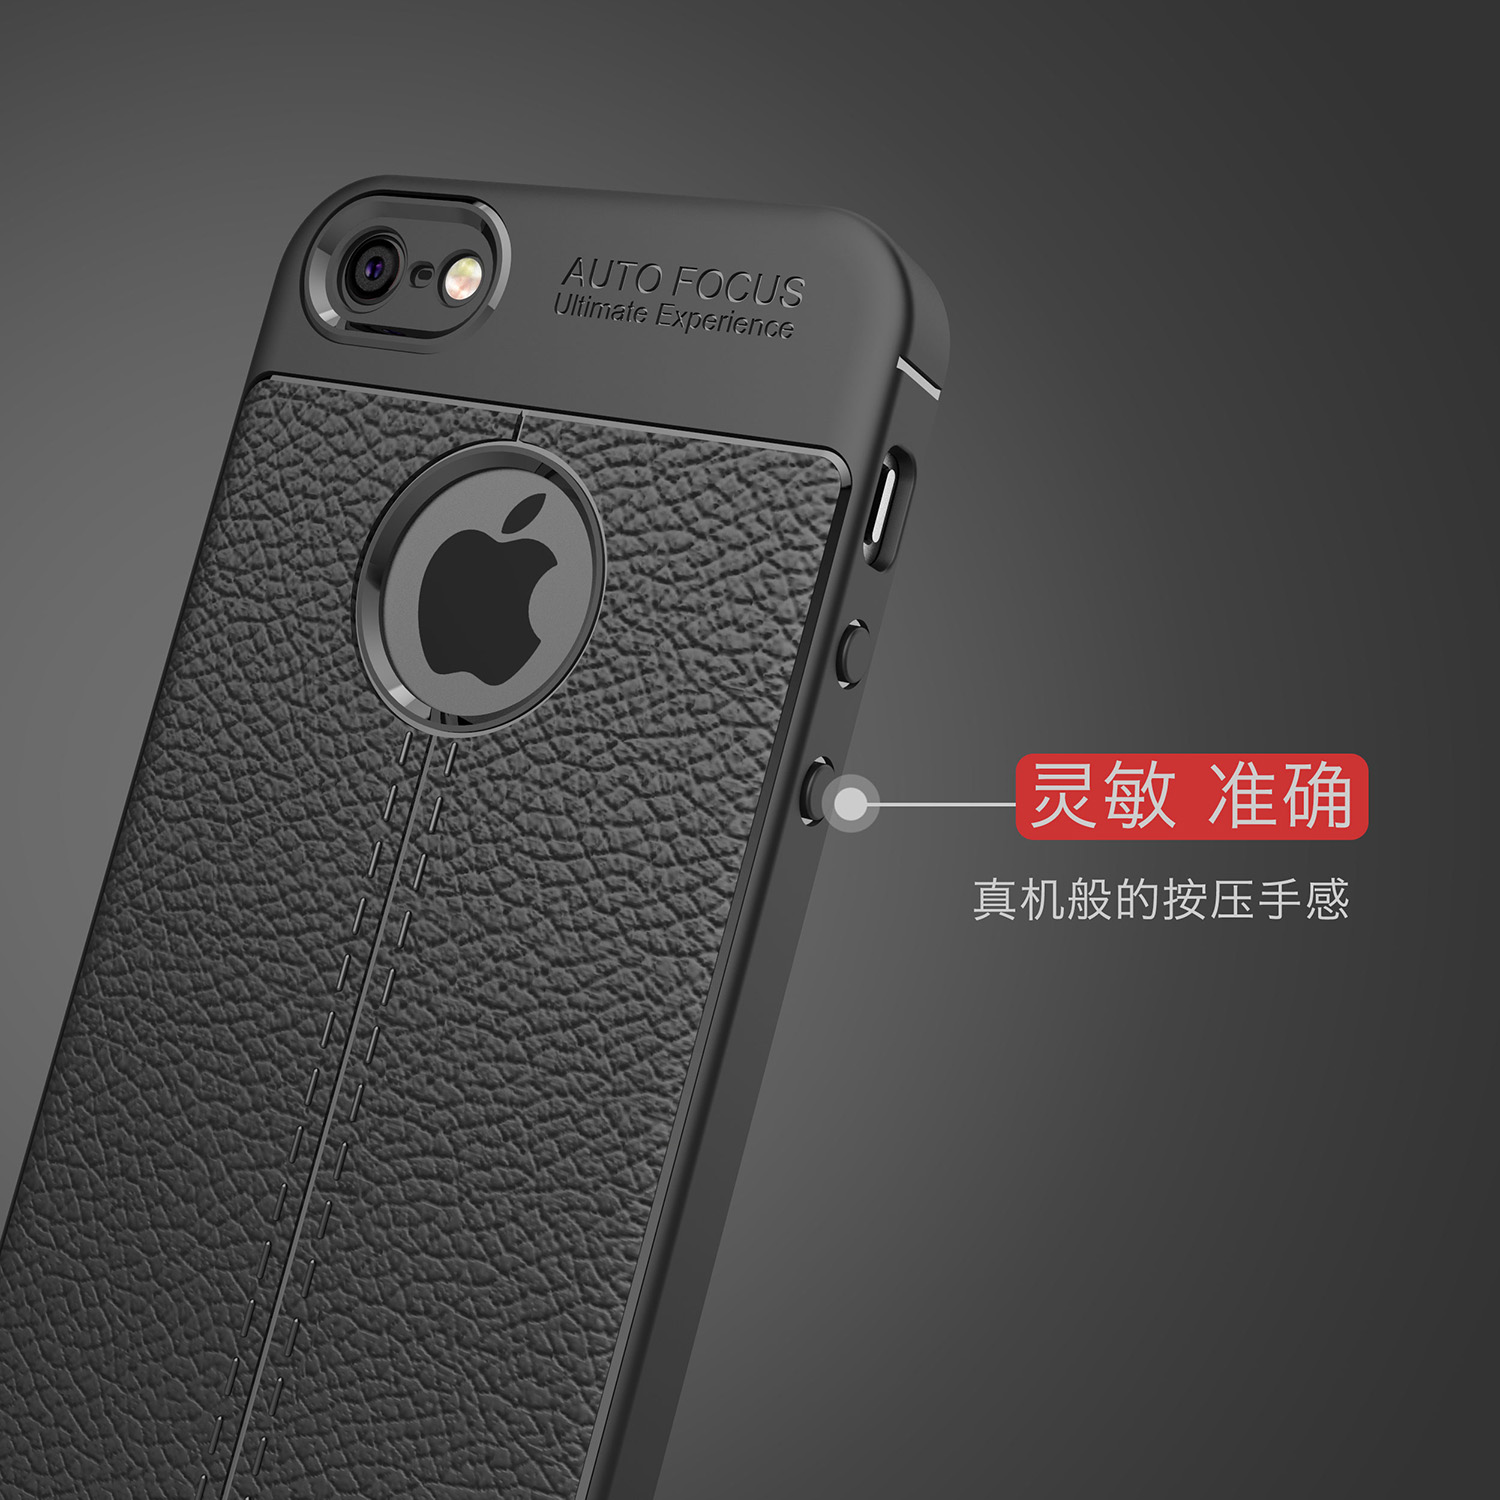 WolfRule sFor Apple SE Iphone Case Shockproof Case For Apple Se Iphone Se Case Luxury Leather WolfRule sFor Apple SE Iphone Case Shockproof Case For Apple Se Iphone Se Case Luxury Leather Soft TPU For Iphone 5s Cover ]